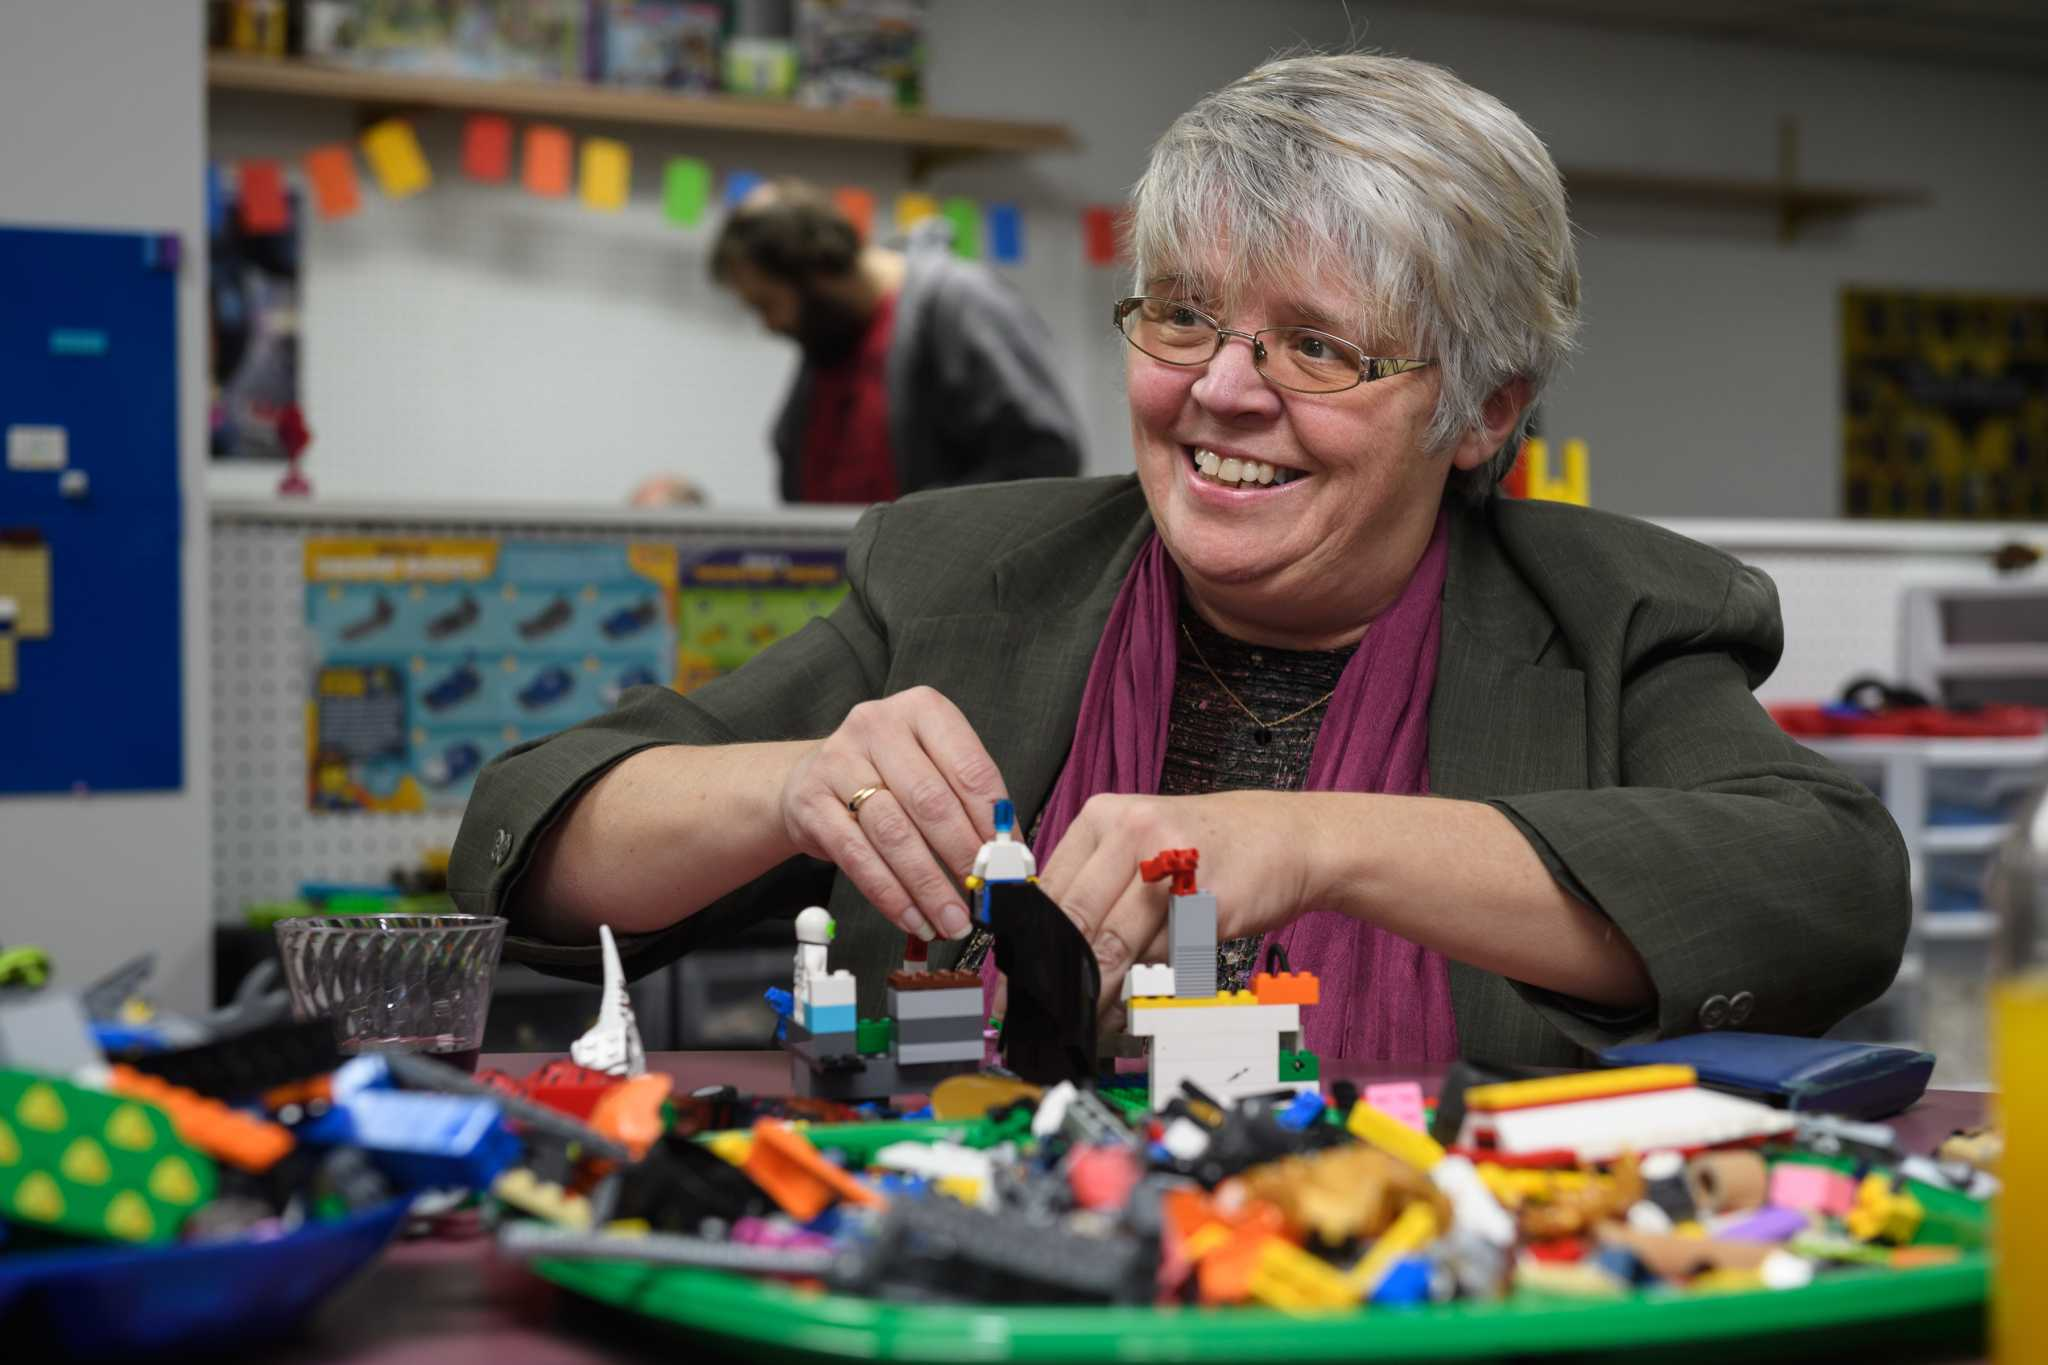 Lego sets its sights on a growing market: Stressed-out adults